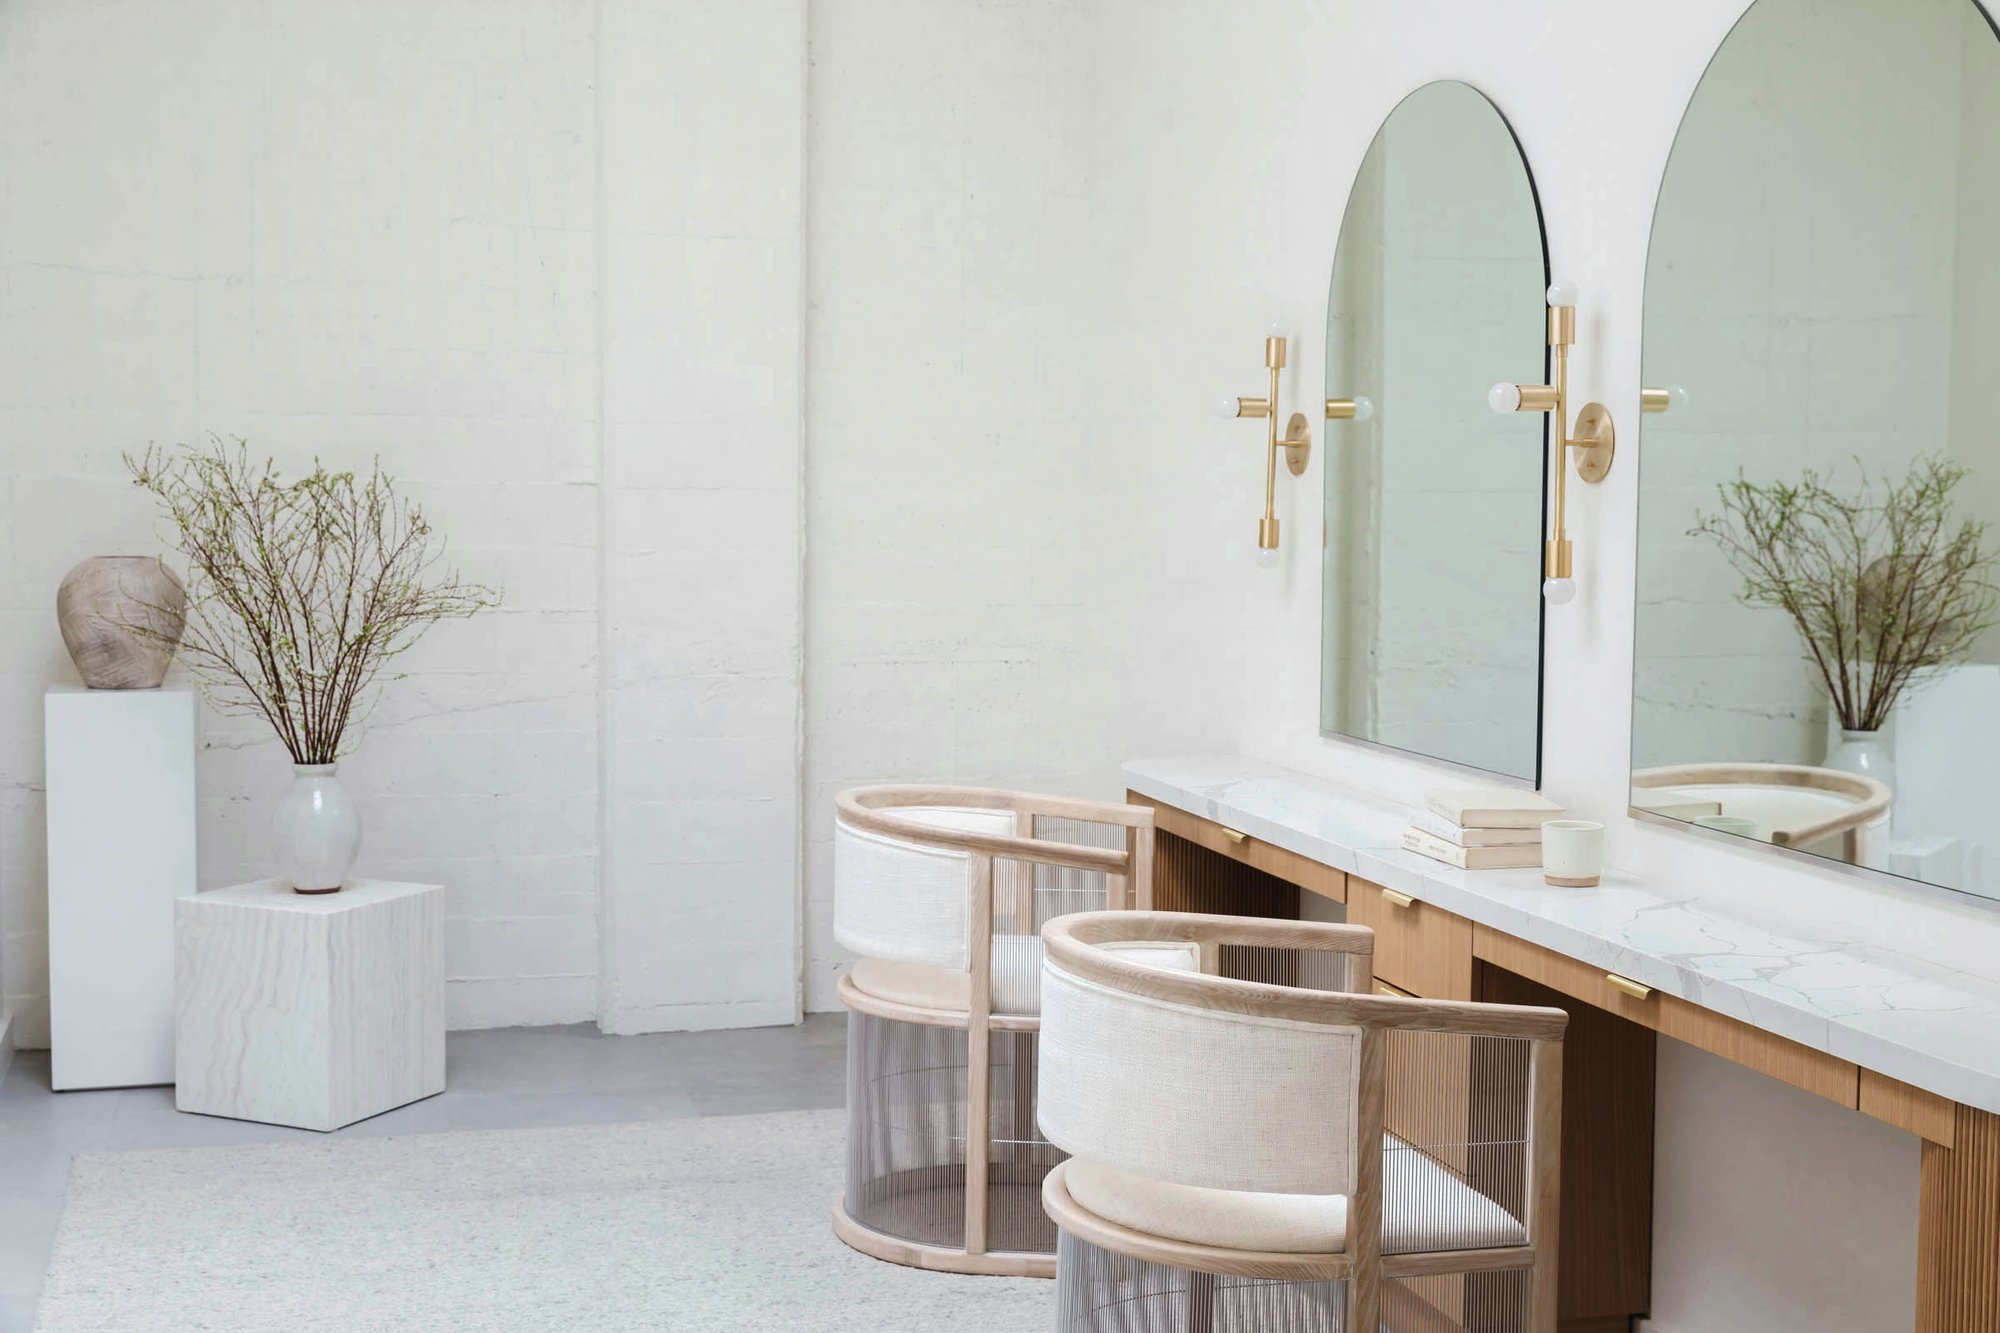 Dressing room featuring custom designed vanity and mirrors